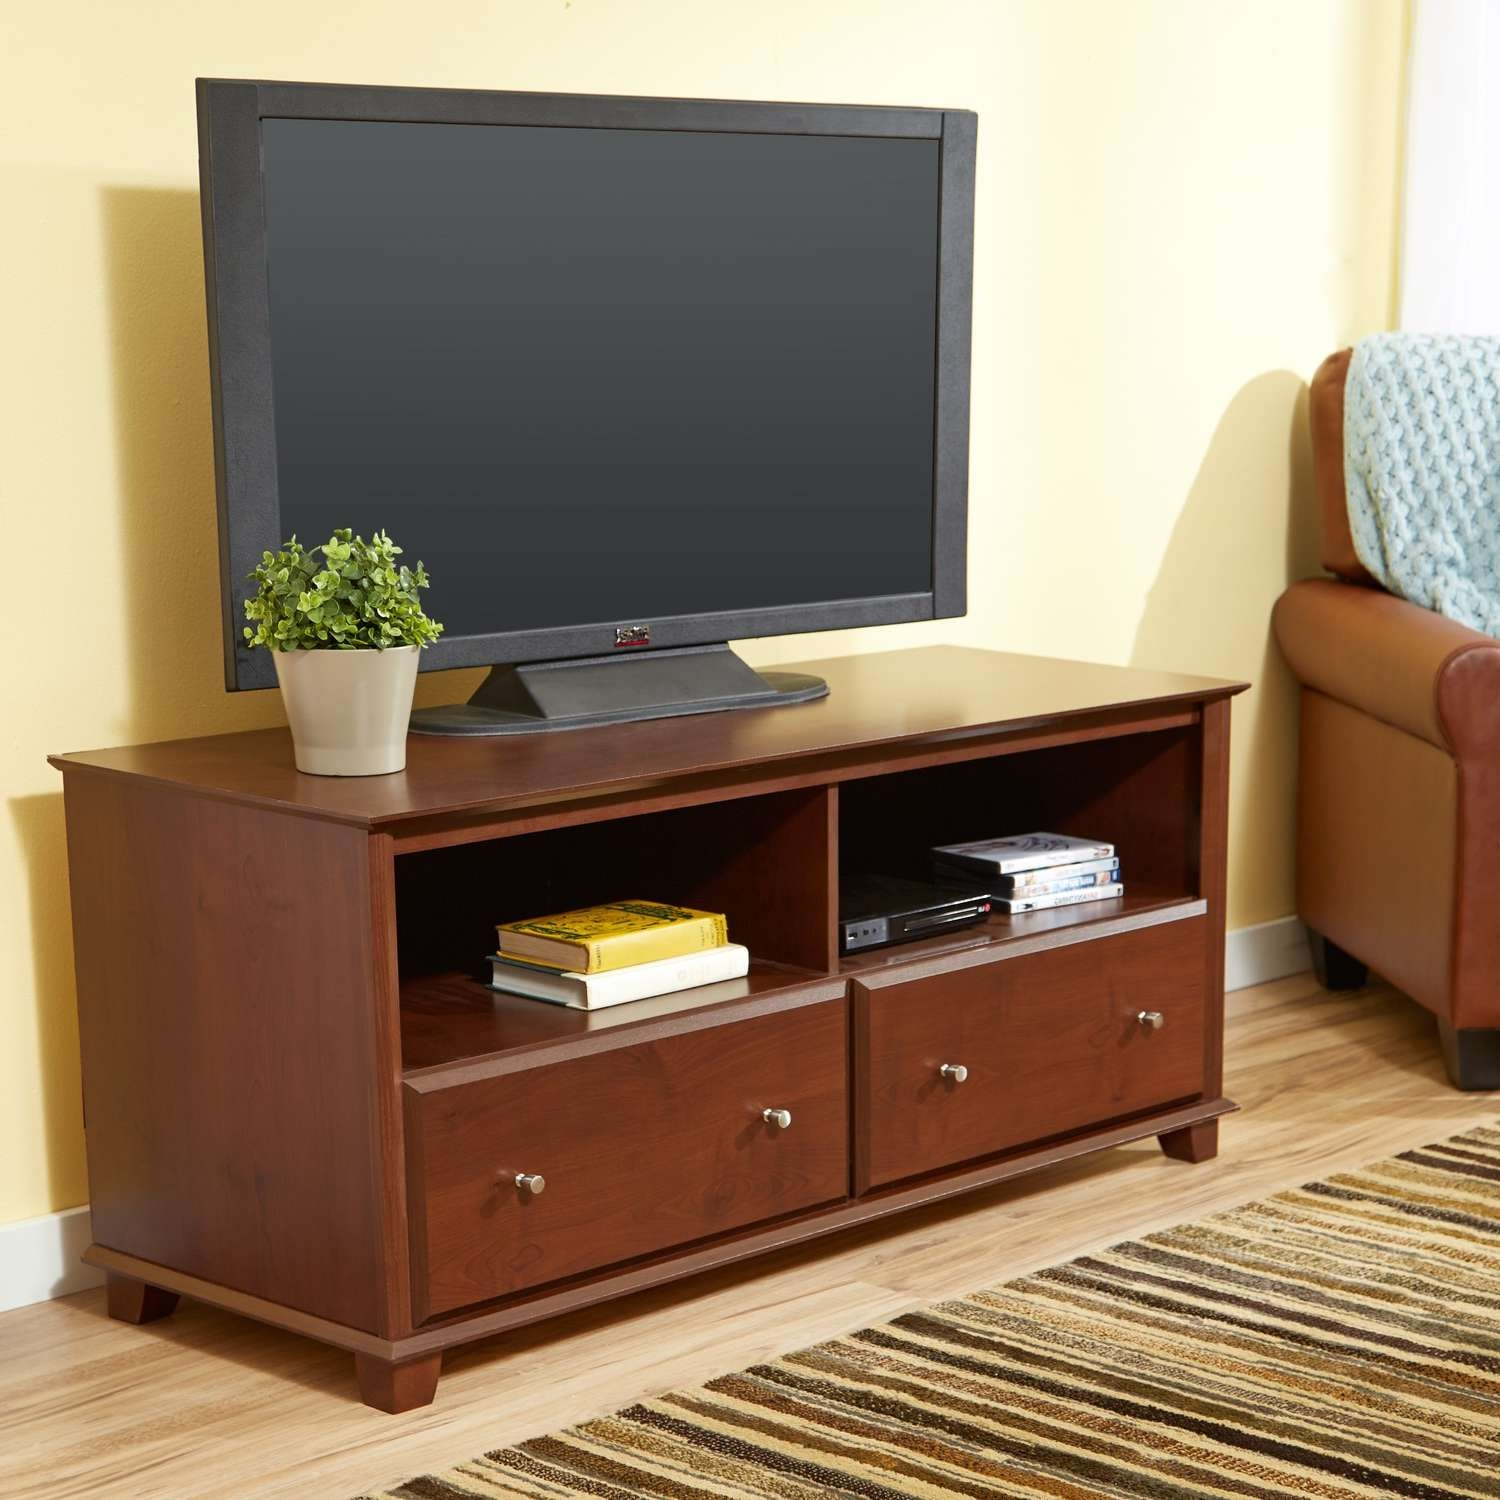 Furniture: Winsome Vivacious Mesmerizing Brown Cabinet Apothecary In Light Colored Tv Stands (View 3 of 15)